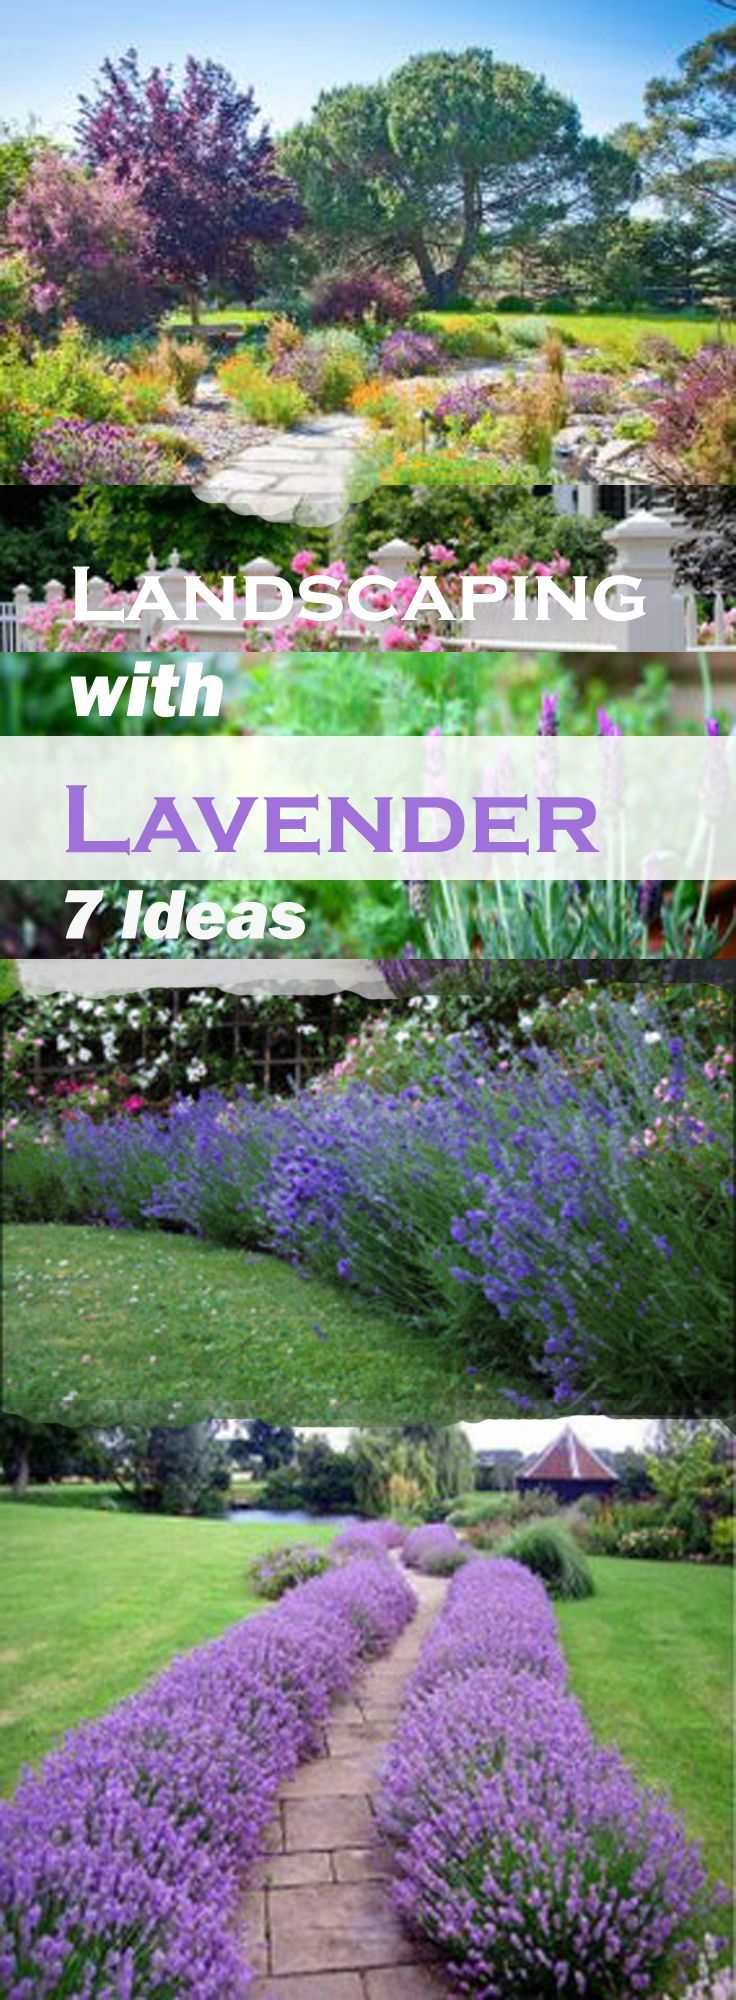 Best 20+ House Garden Design Ideas On Pinterest | Backyard Garden Design,  Landscape Design Small And Small Garden Planting Ideas Part 36